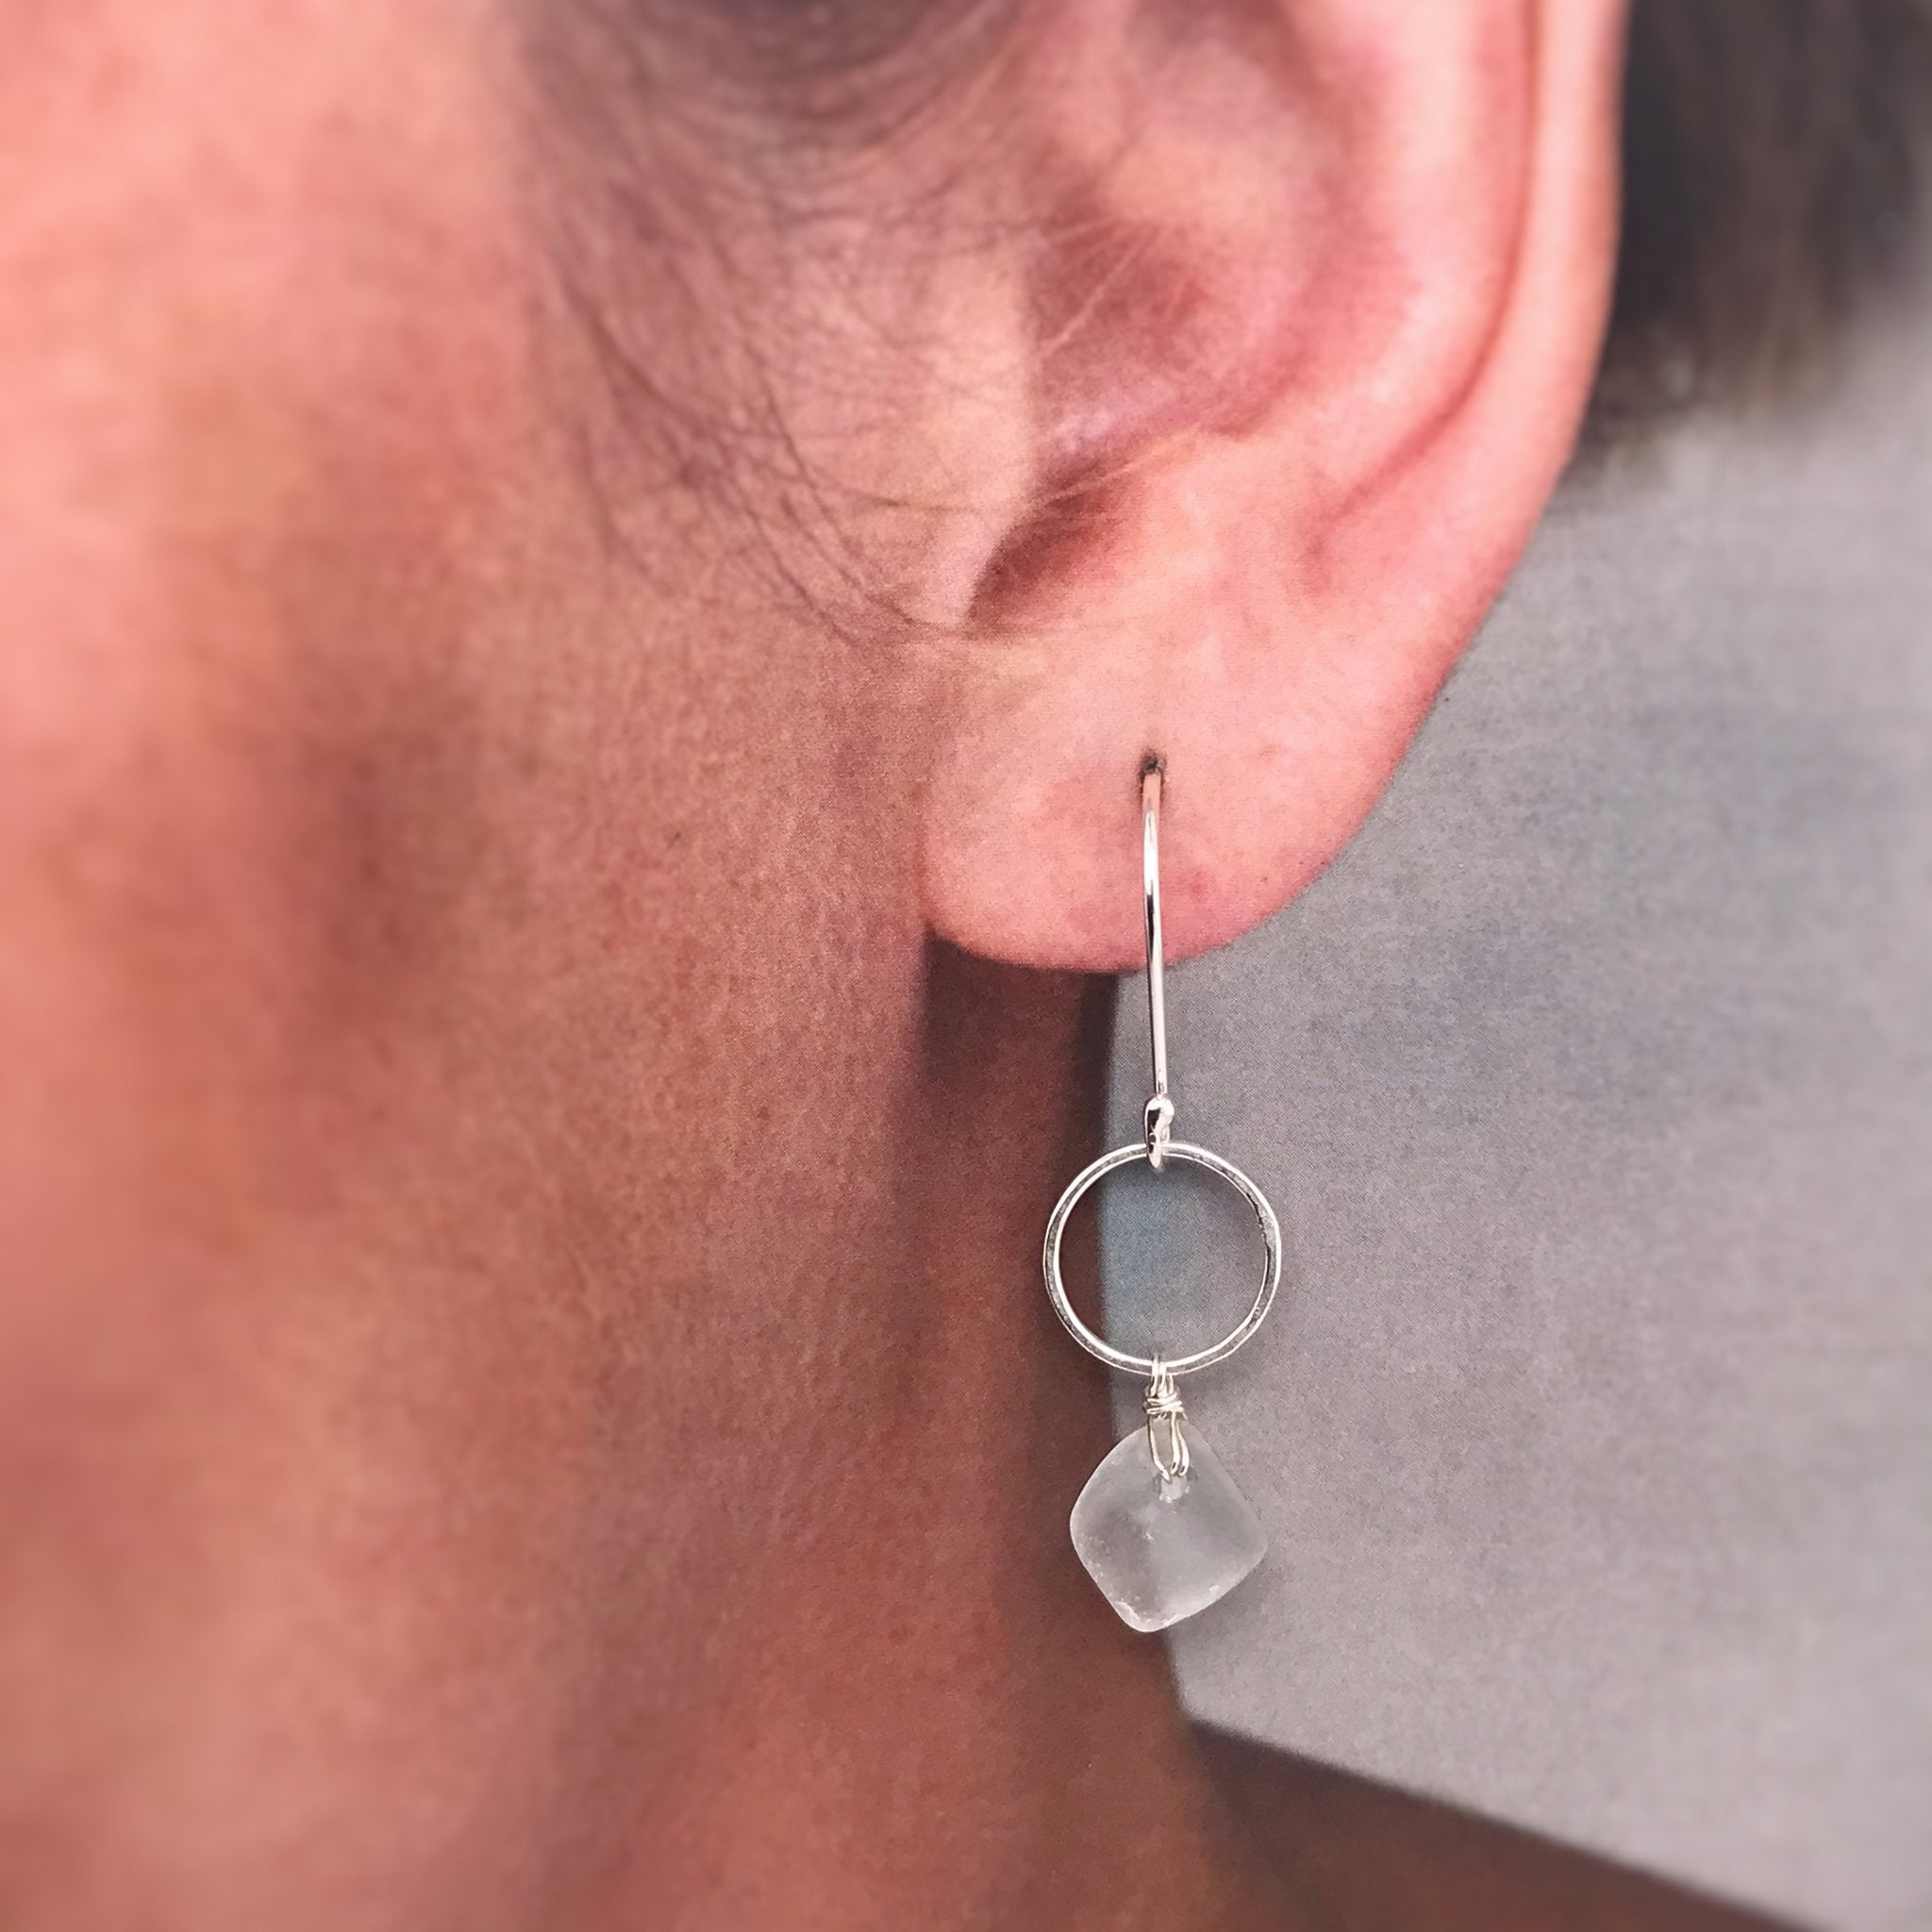 kriket broadhurst jewellery sterling silver open circle earrings with clear seaglass